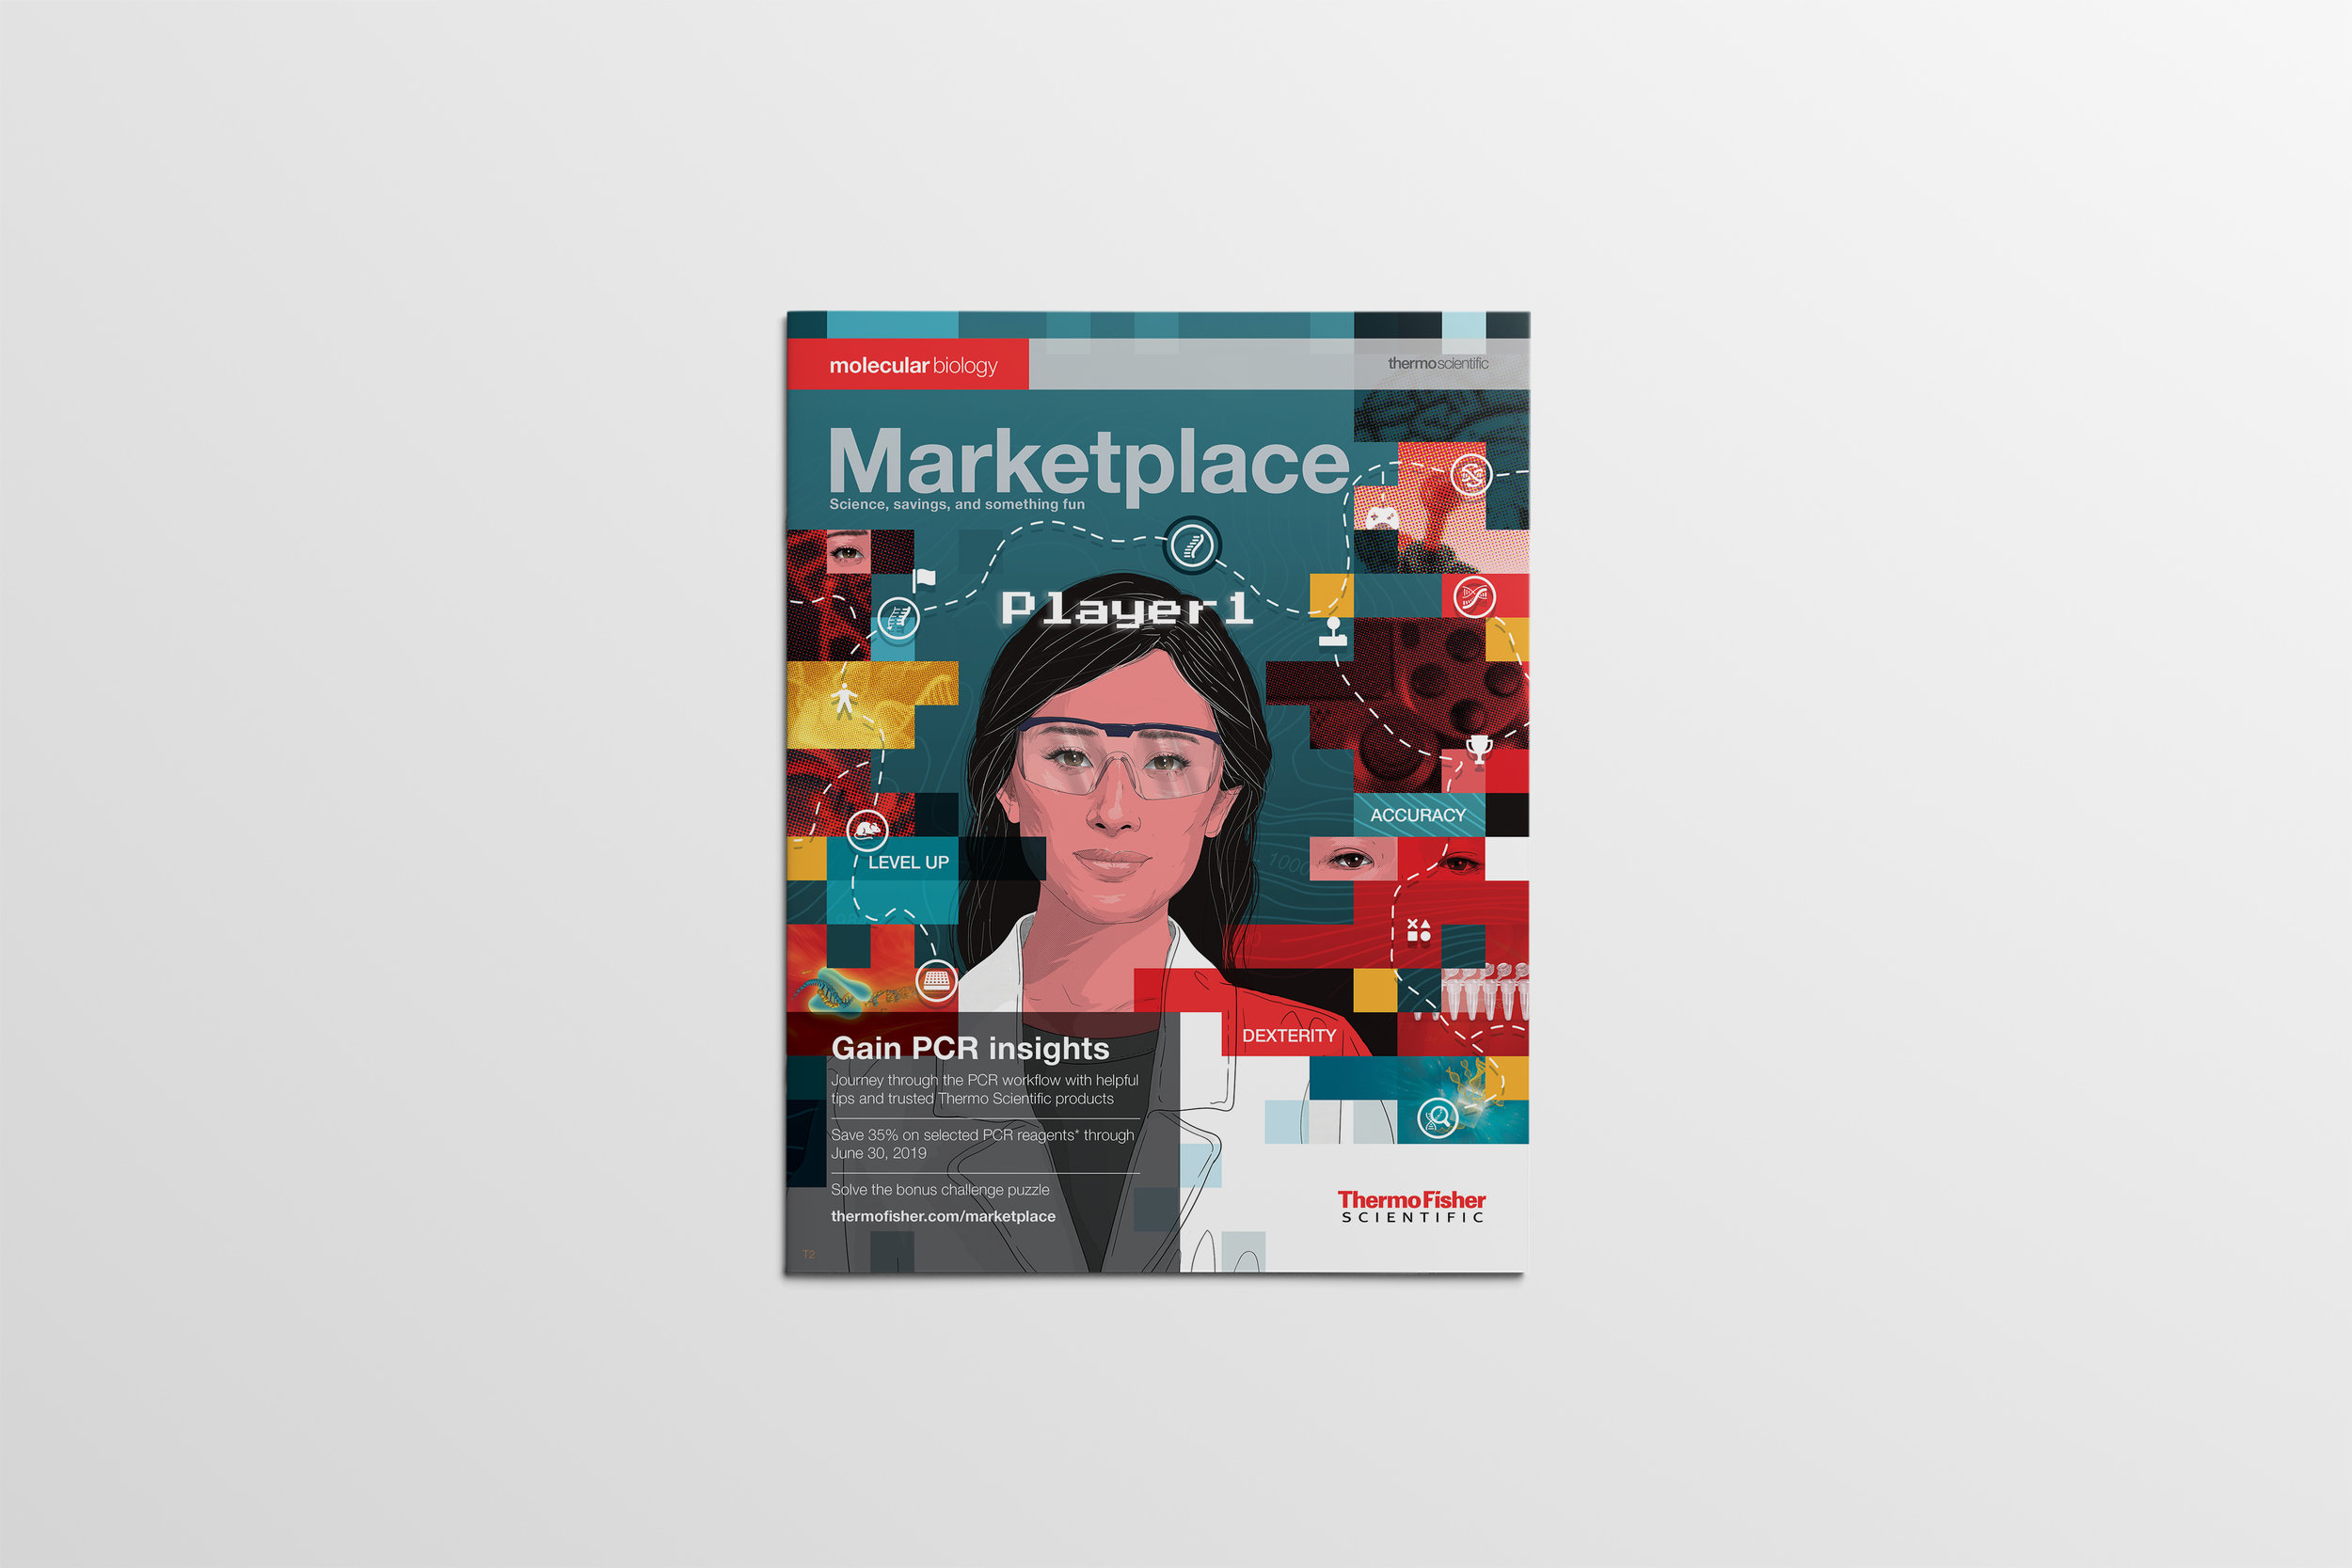 TFS 003 marketplace_cover.jpg